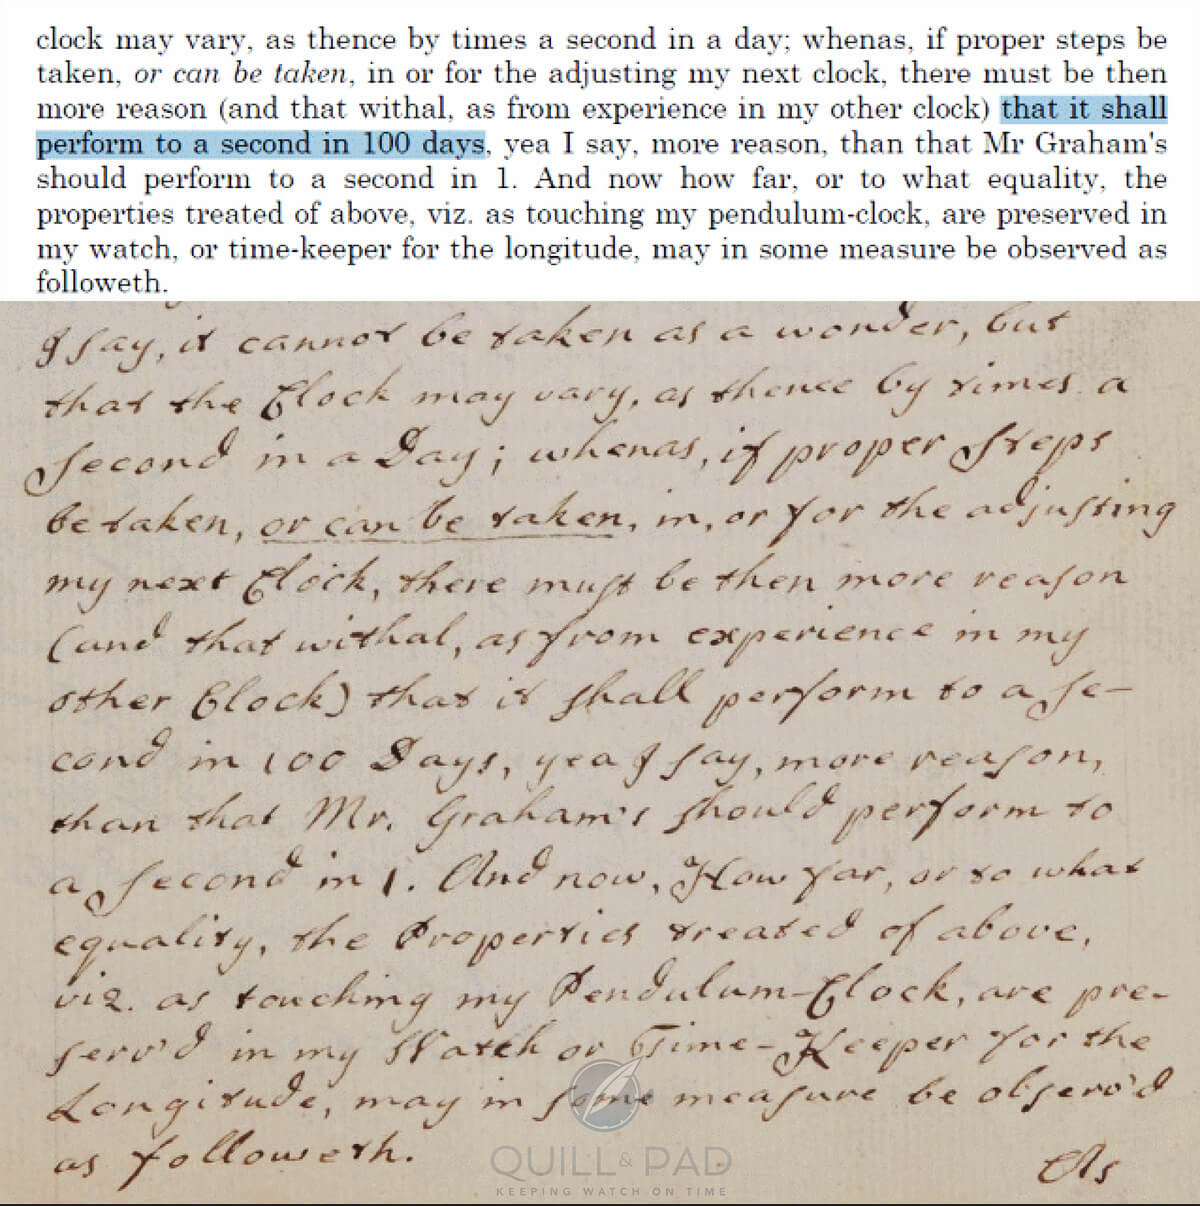 Part of a text published by John Harrison in which he claims that he could make a clock accurate to one-second over 100-days